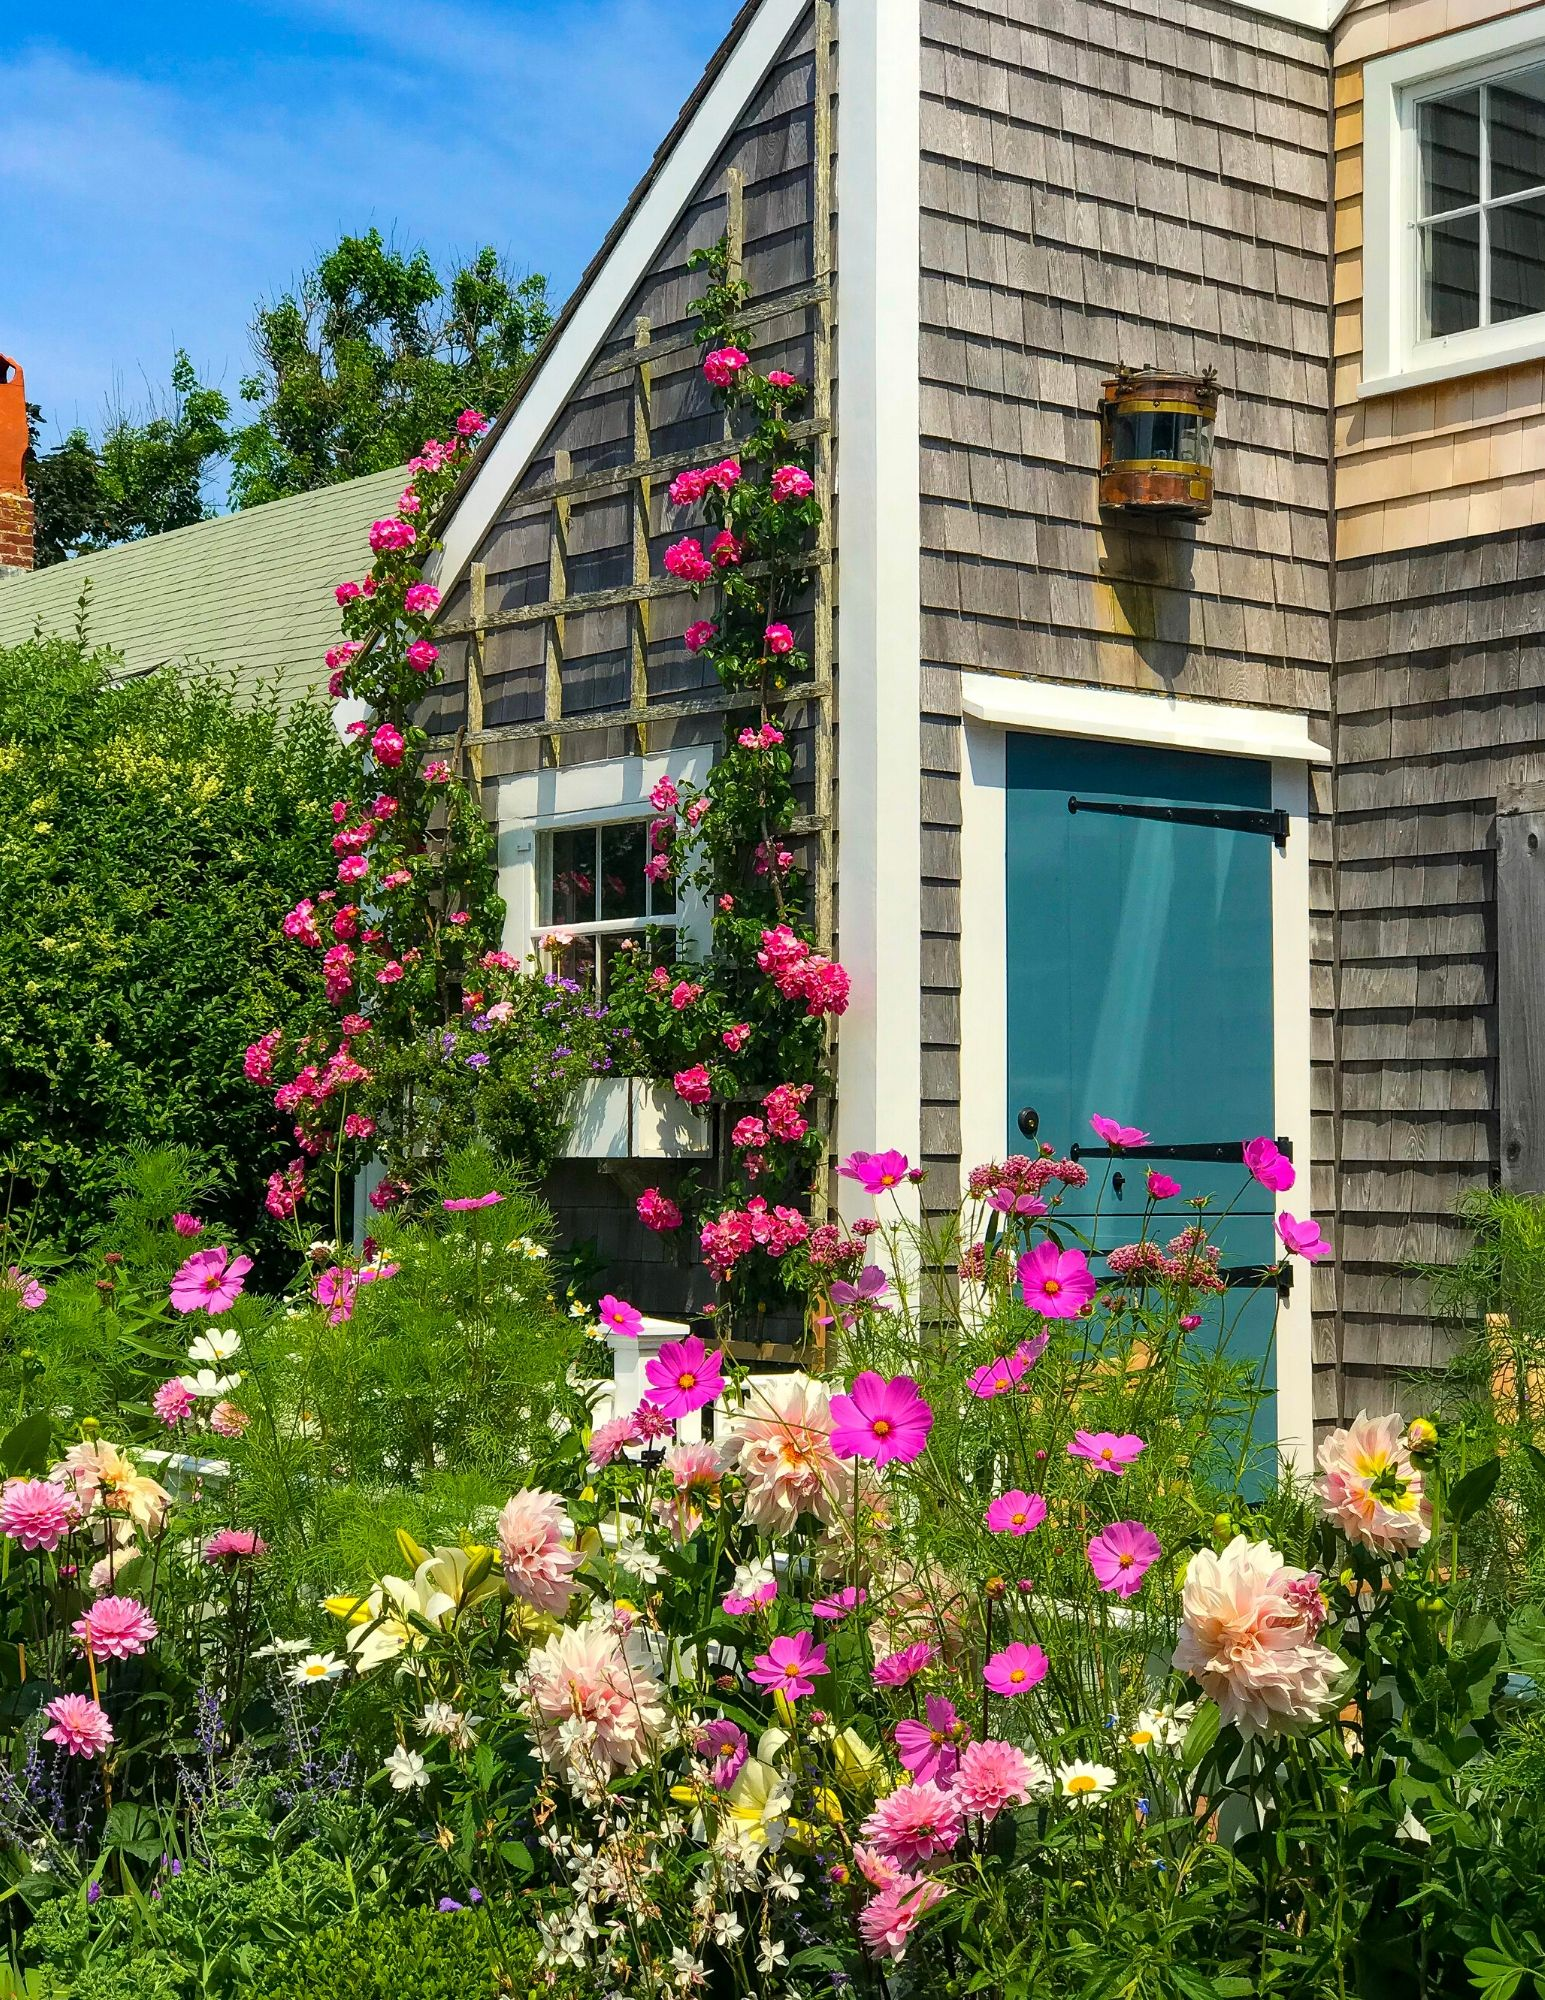 Nantucket Rose Covered Cottages in Sconset-21